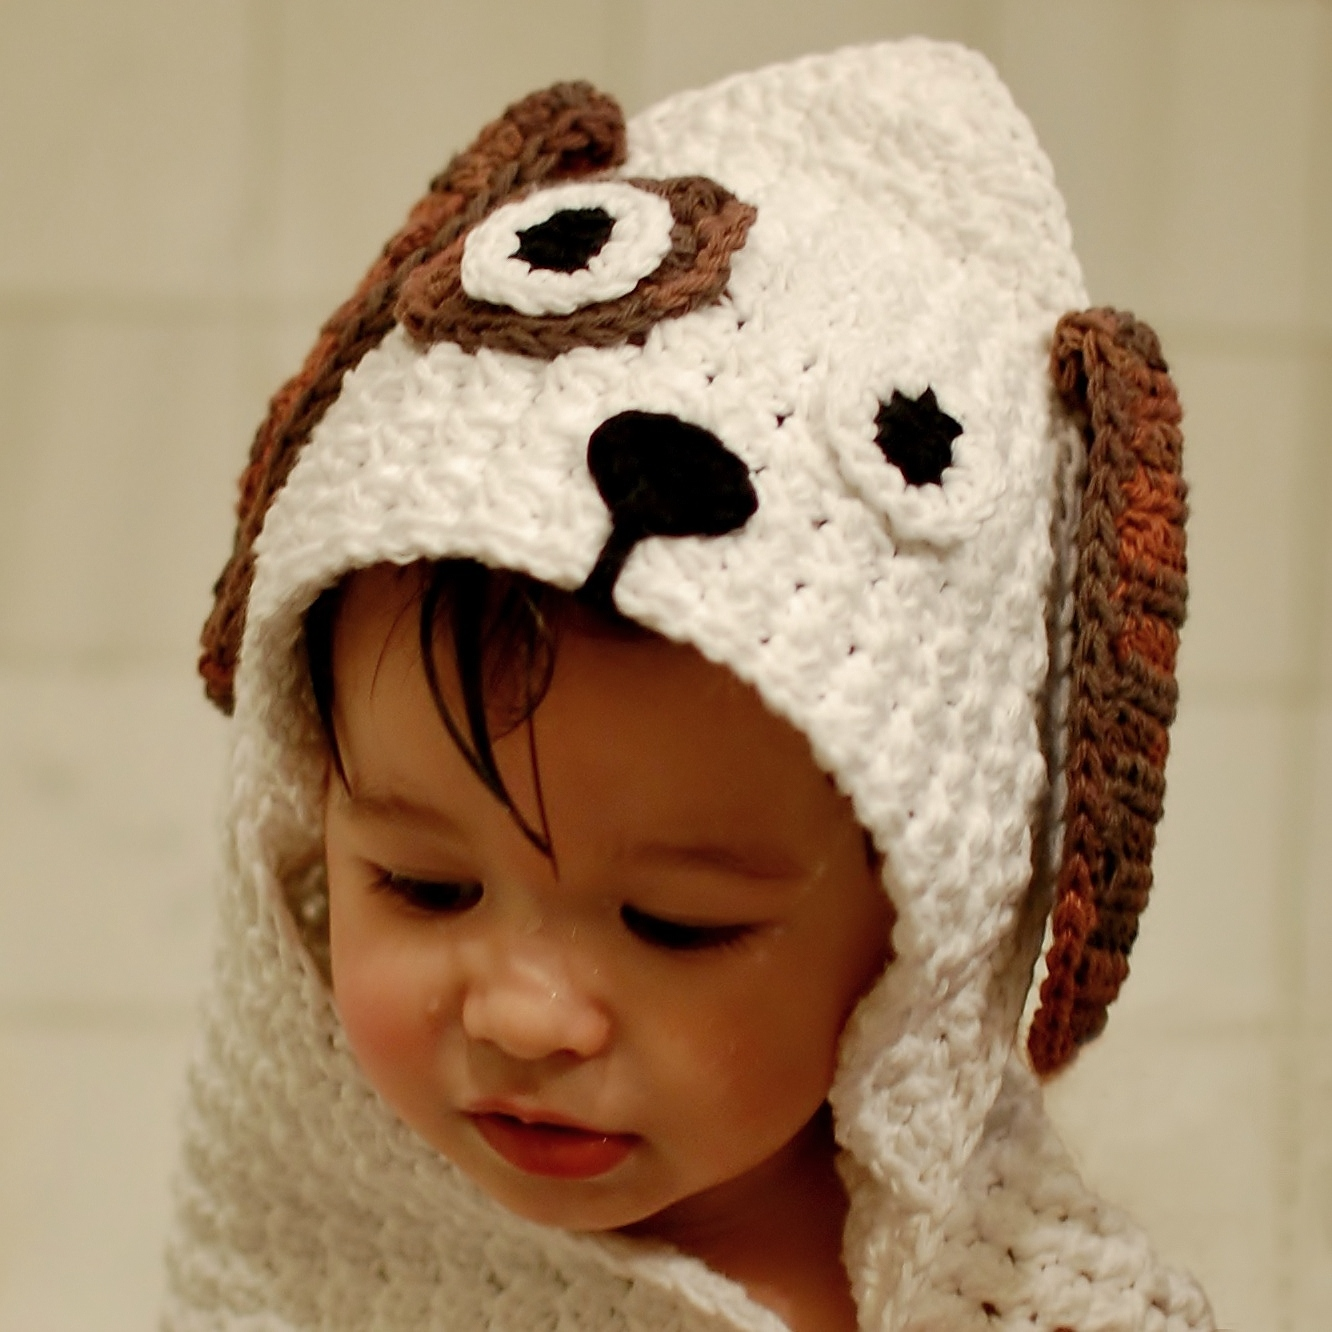 Crochet Pattern For Dog Blanket : Crochet Pattern - Dog Hooded Baby Towel (also makes a ...